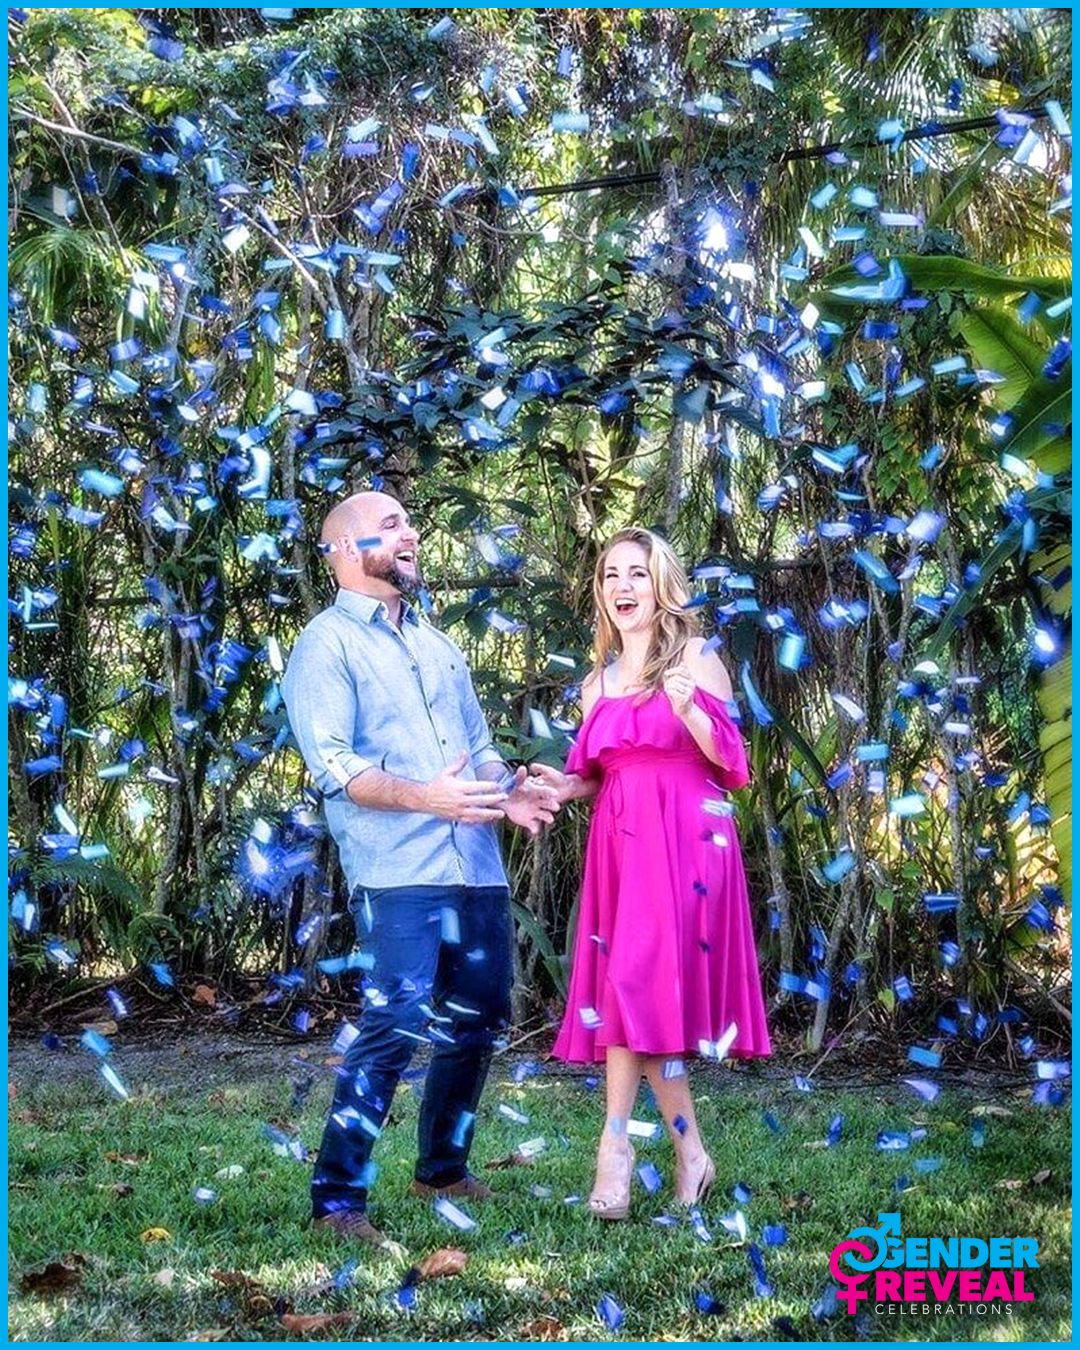 Pin On Gender Reveal Confetti Cannons